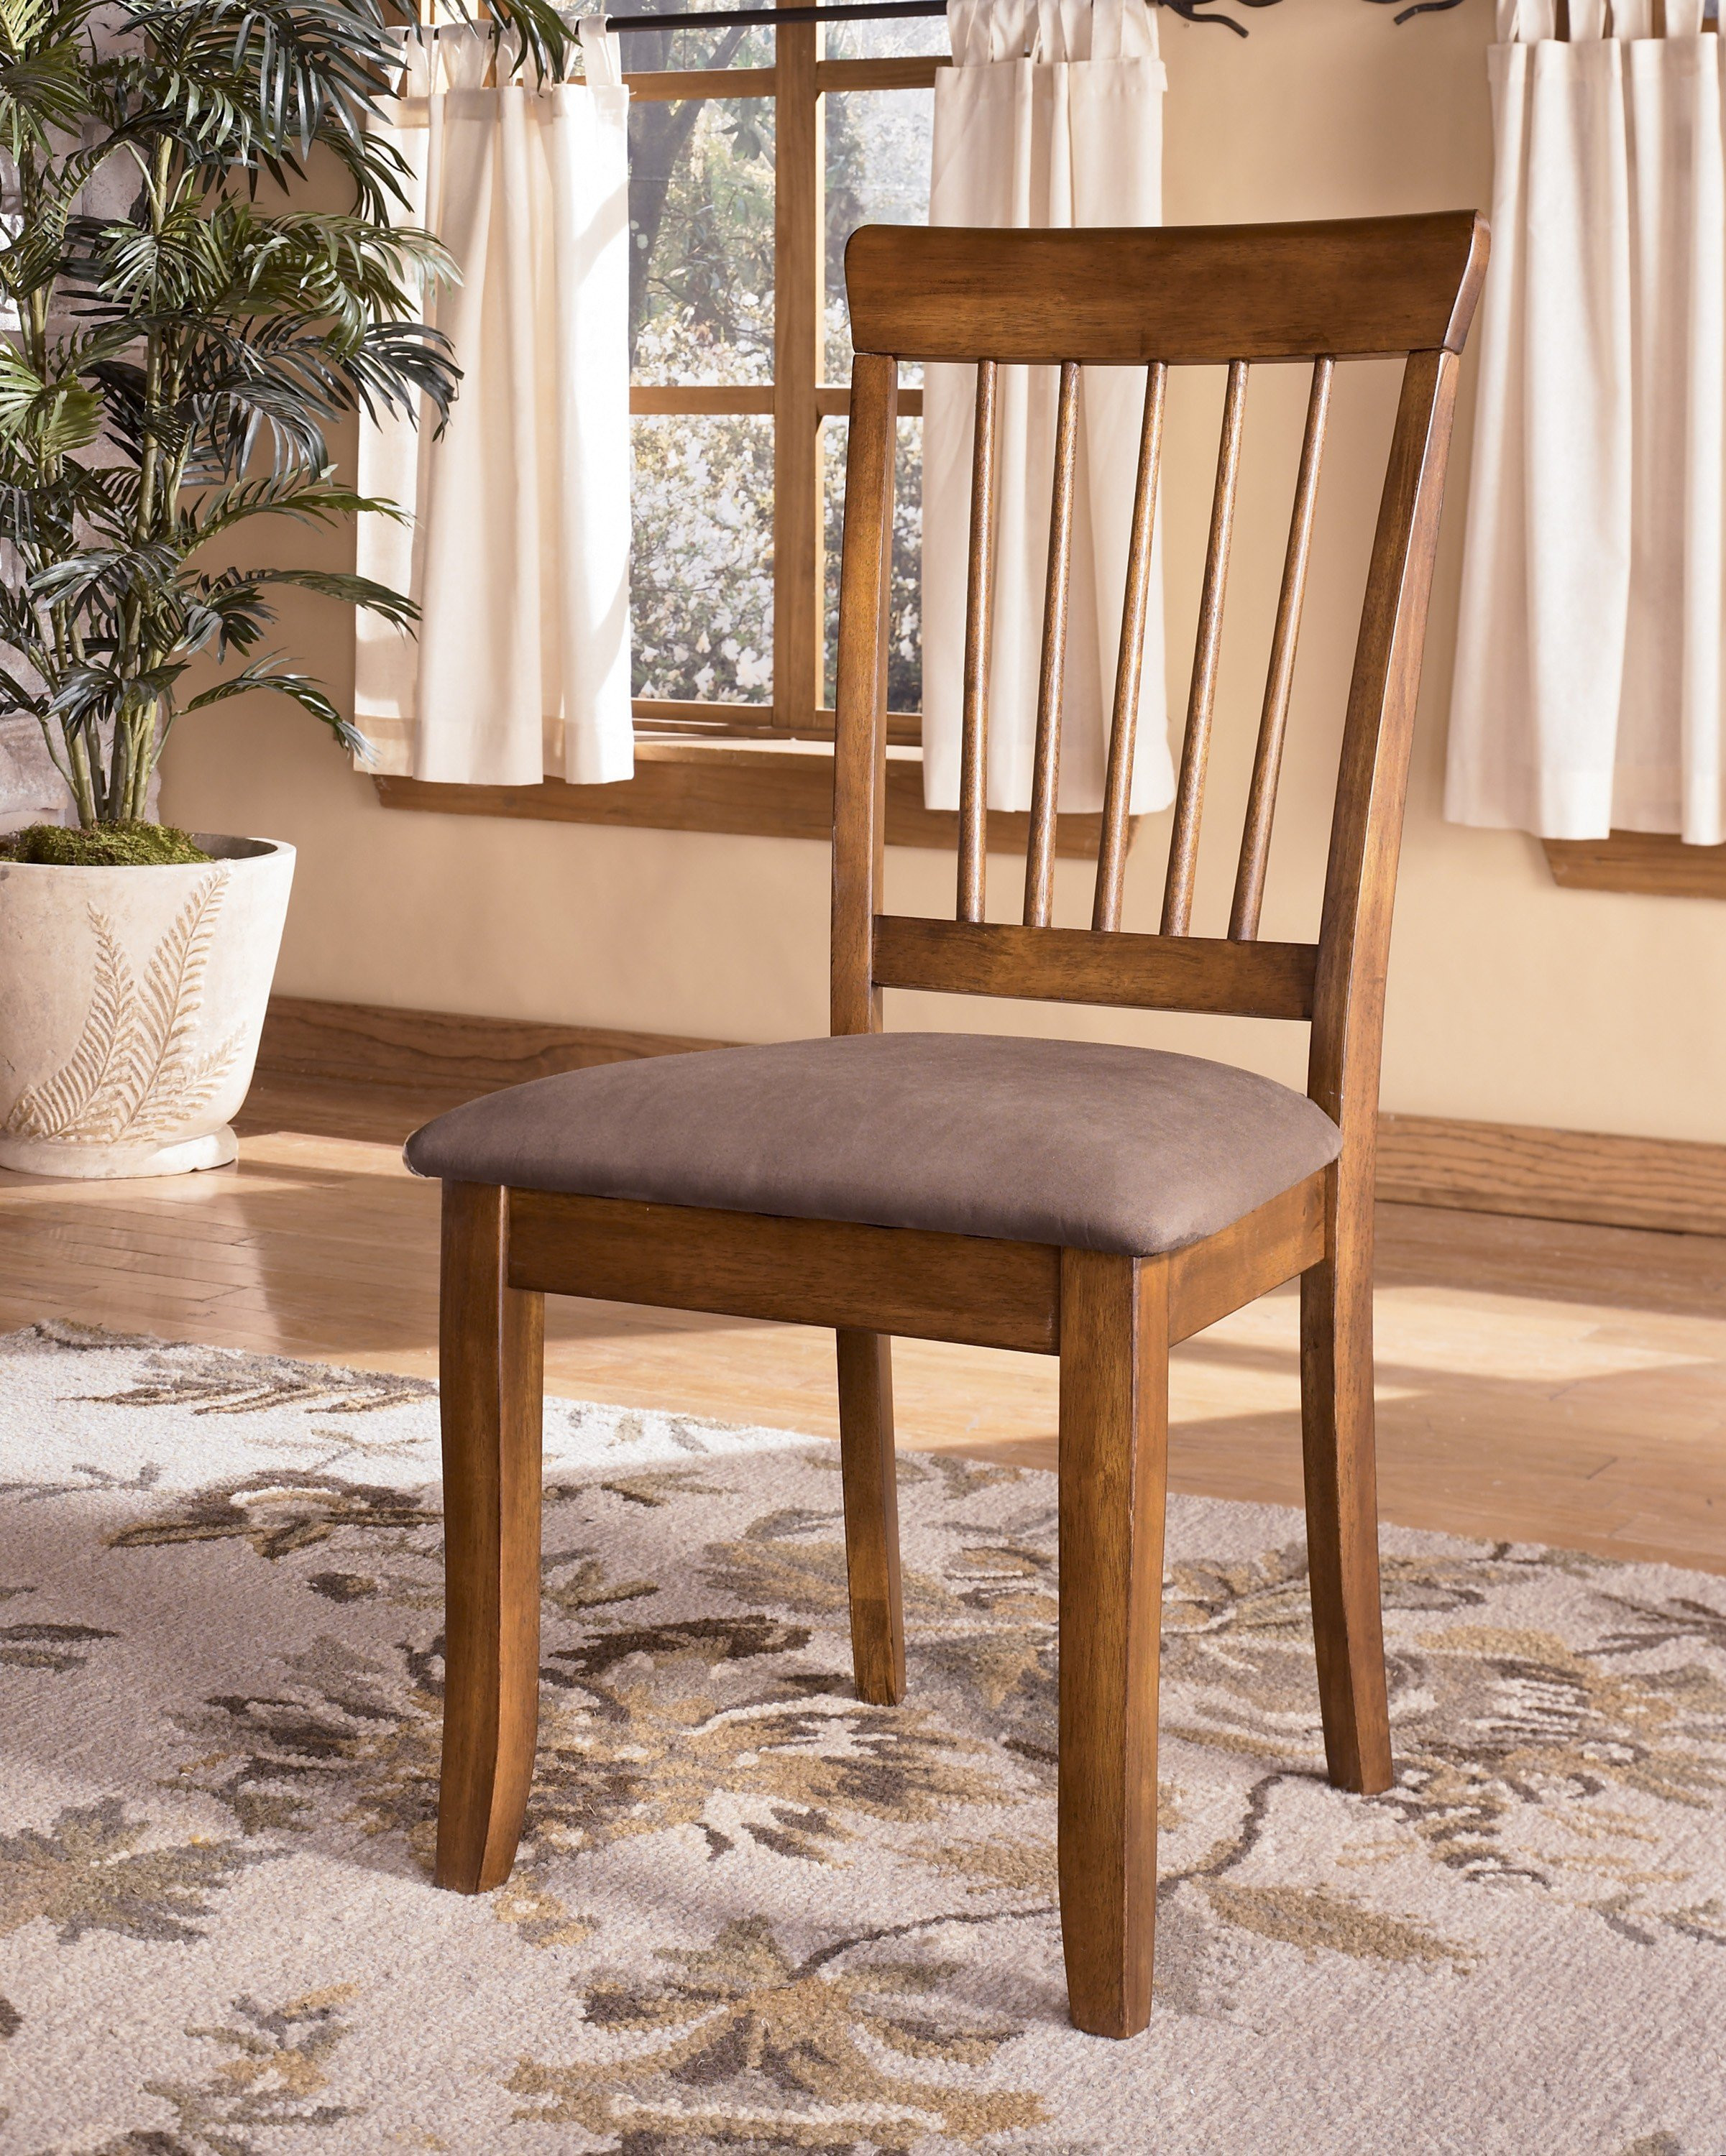 Best ideas about Ashley Furniture Dining Sets . Save or Pin Berringer Dining Room Set with Bench Signature Design by Now.